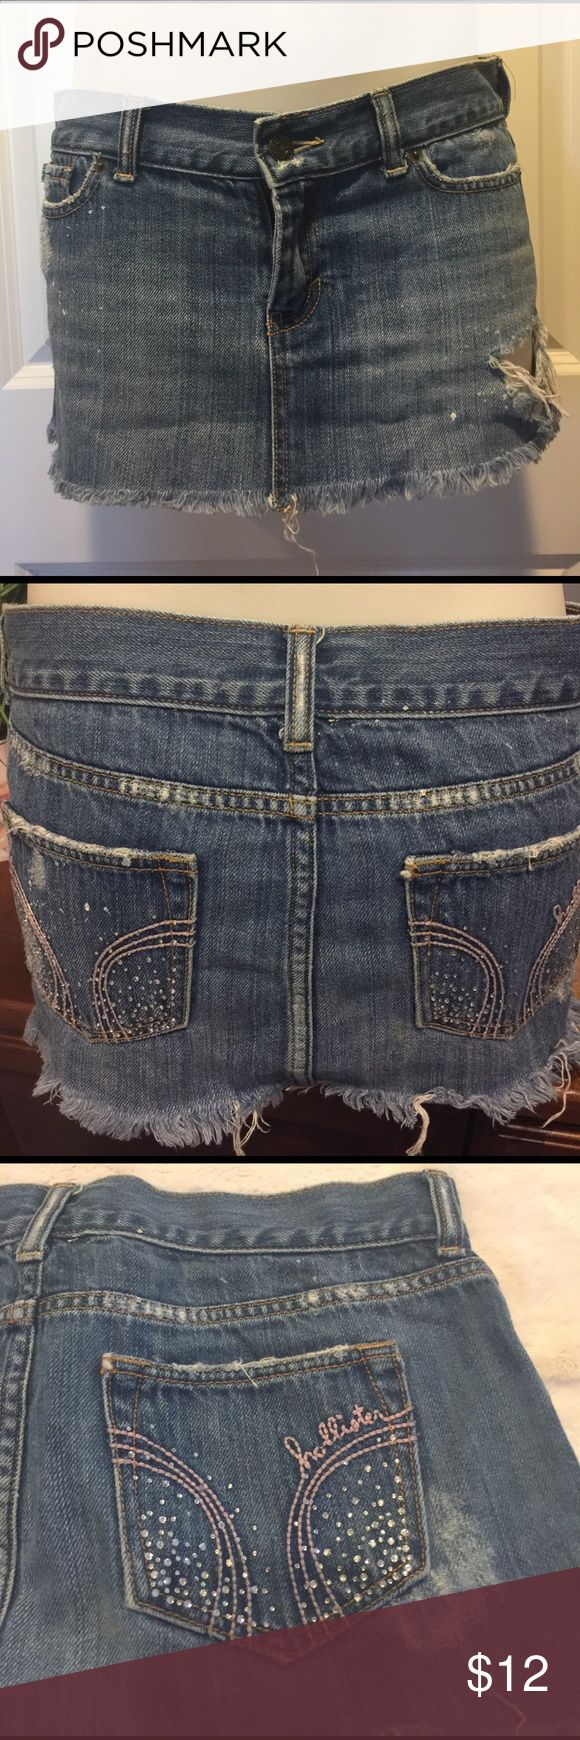 ✅2 For $15✅Hollister Distressed Jean Skirt🌟 Hollister Distressed Jean skirt in great condition! Thanks for looking 😊.   ALL $10 ITEMS 2 FOR $15 Hollister Skirts Mini